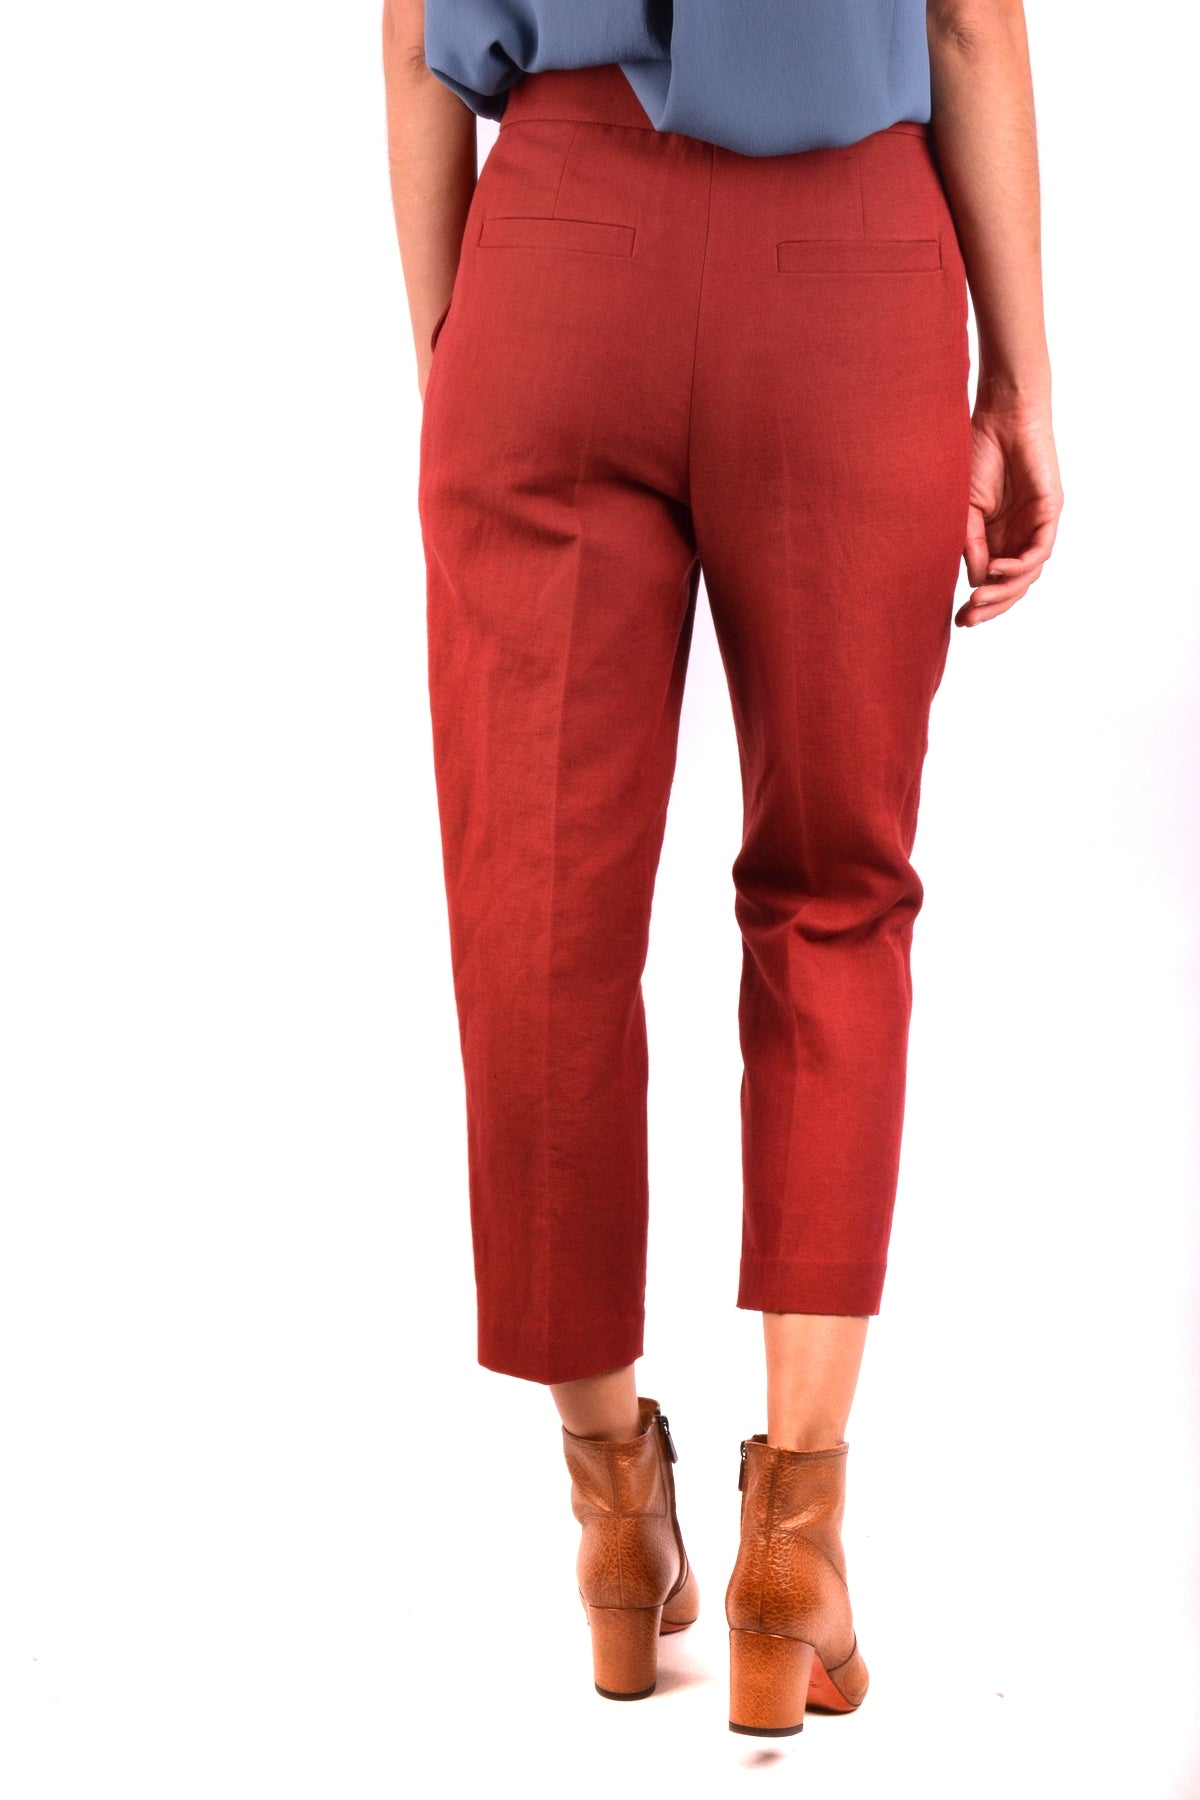 Trousers Brunello Cucinelli-Trousers - WOMAN-Product Details Season: Spring / SummerTerms: New With LabelMain Color: RedGender: WomanMade In: ItalyManufacturer Part Number: Mf553P6394Size: ItYear: 2018Clothing Type: TrousersComposition: Cotton 51%, Lyocell 49%-Keyomi-Sook